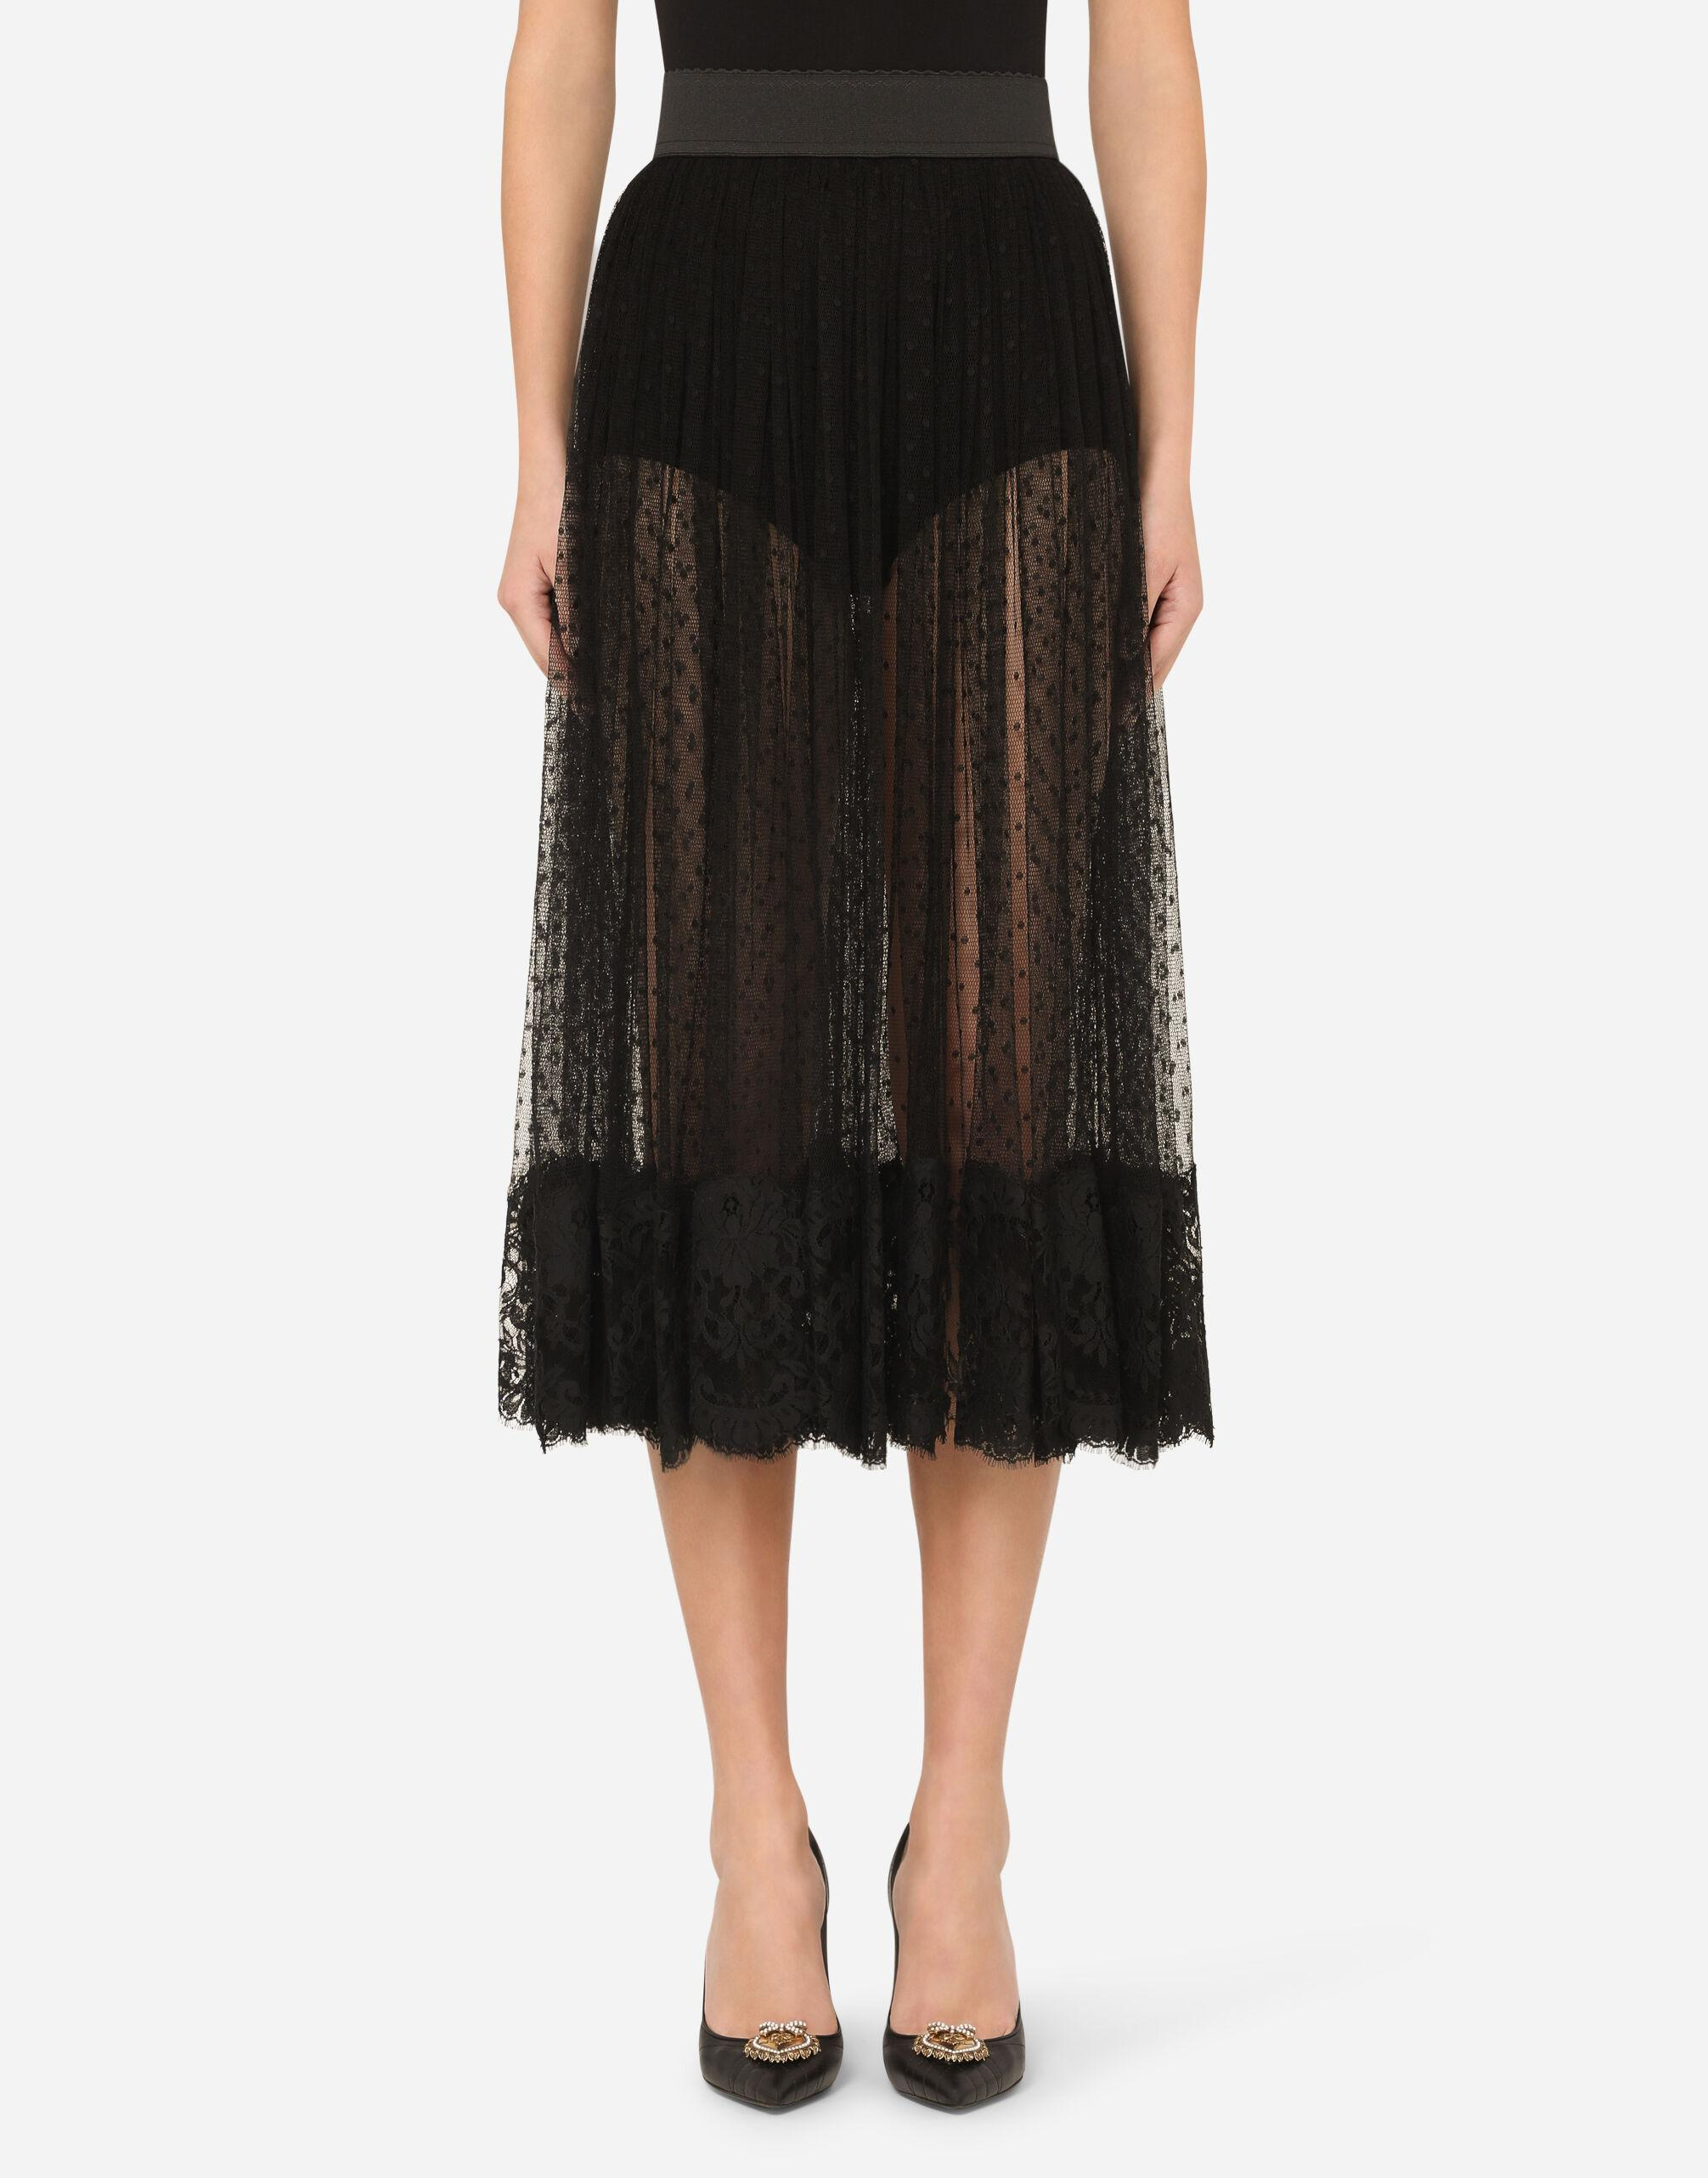 Pleated calf-length skirt in chantilly lace and plumetis